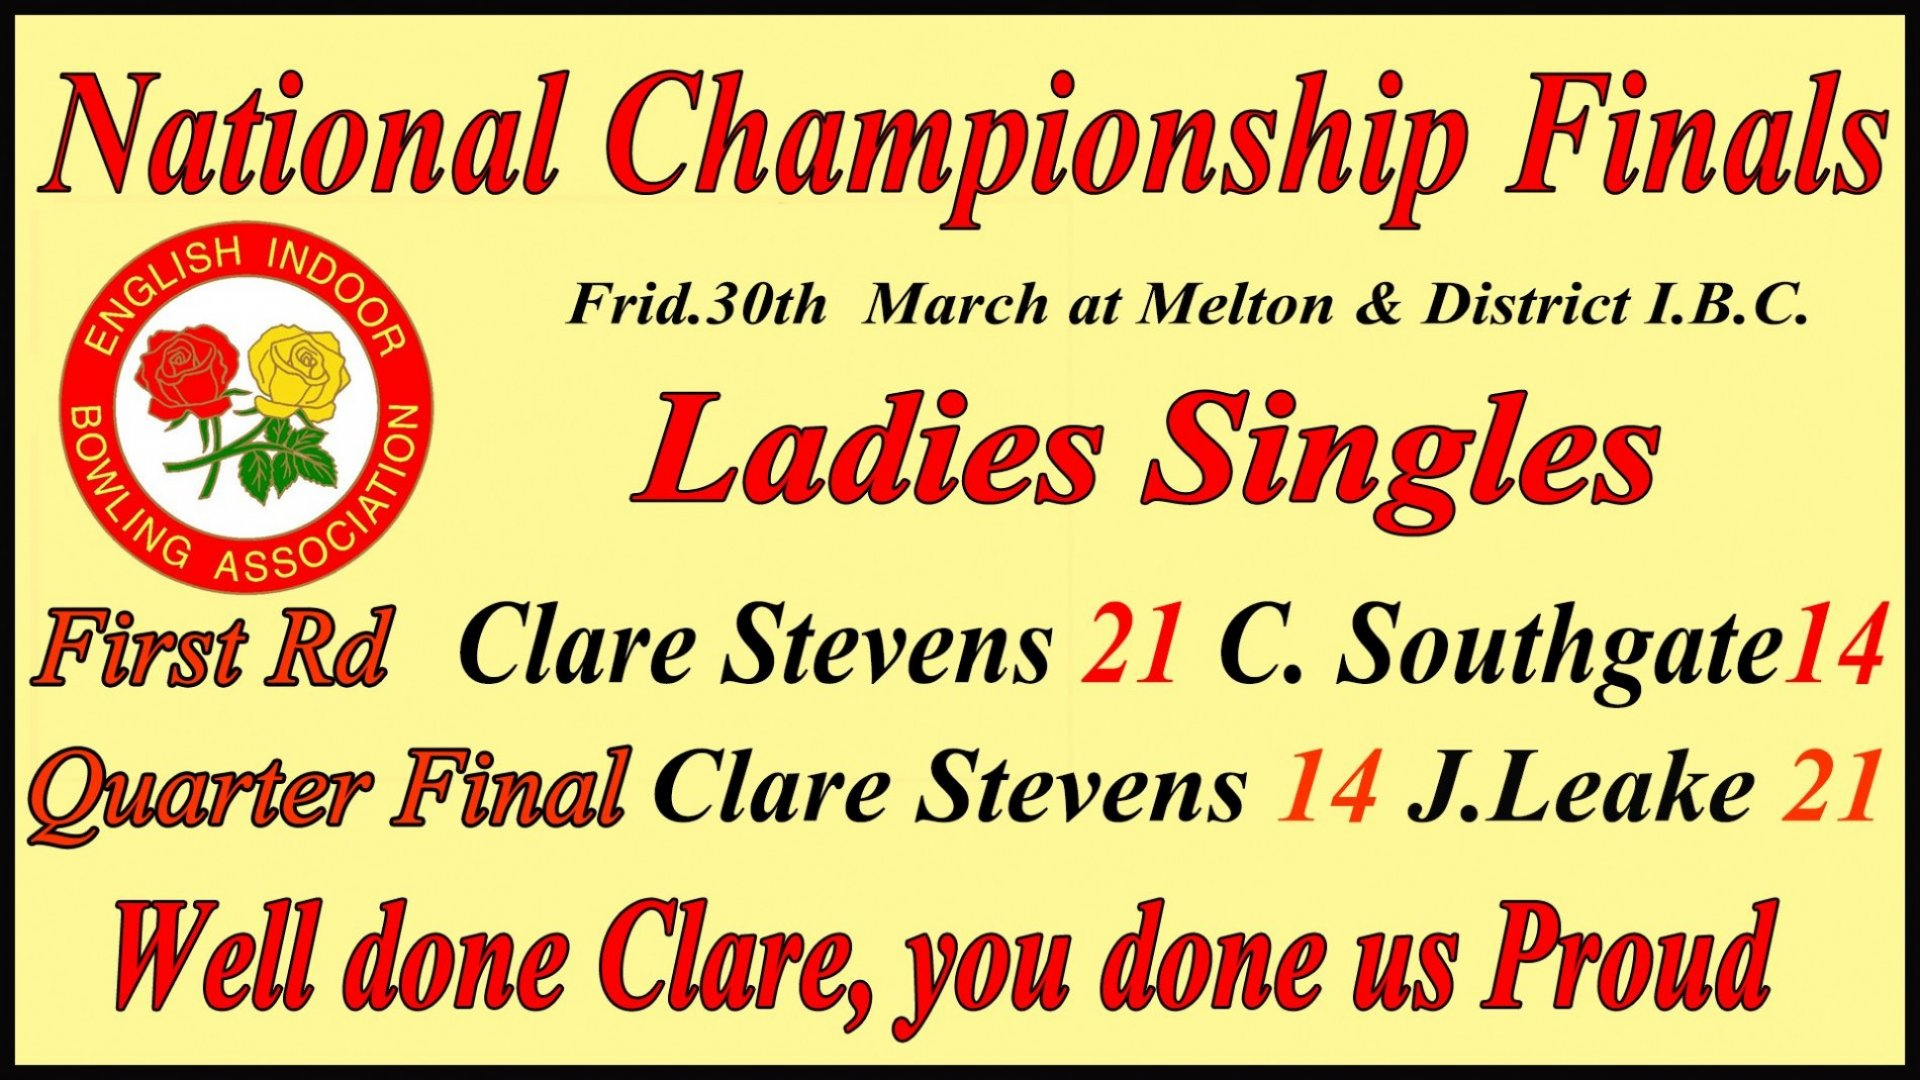 Ladies Singles (Clare Stevens) - National Finals - 1st and Quarter Finals RESULT @ Melton District IBC on 30.3.18 (1.4.18)